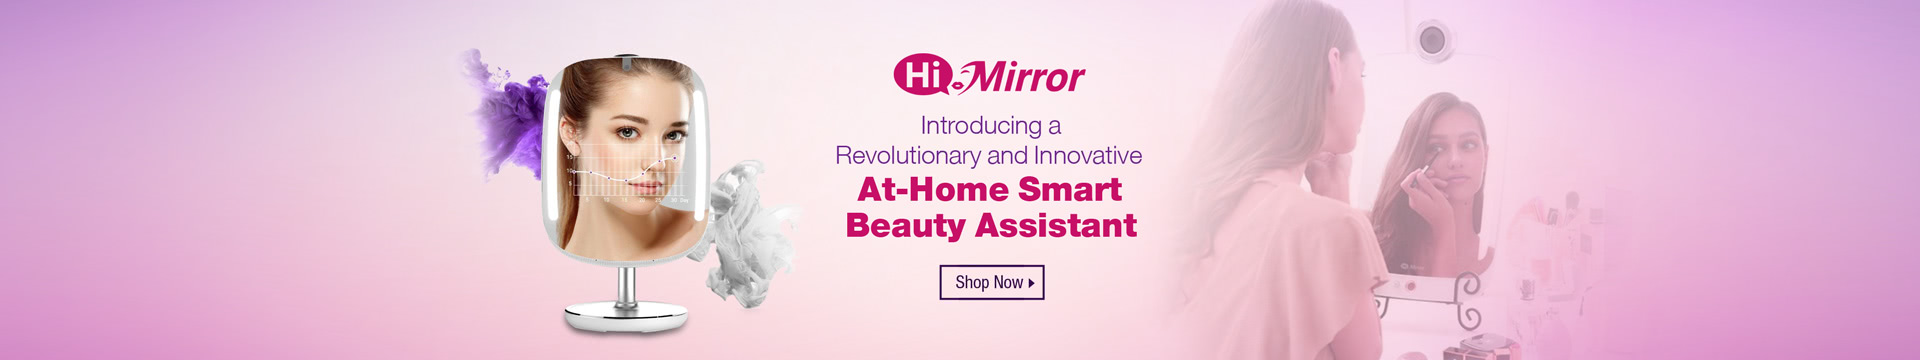 At-home smart beauty assistant